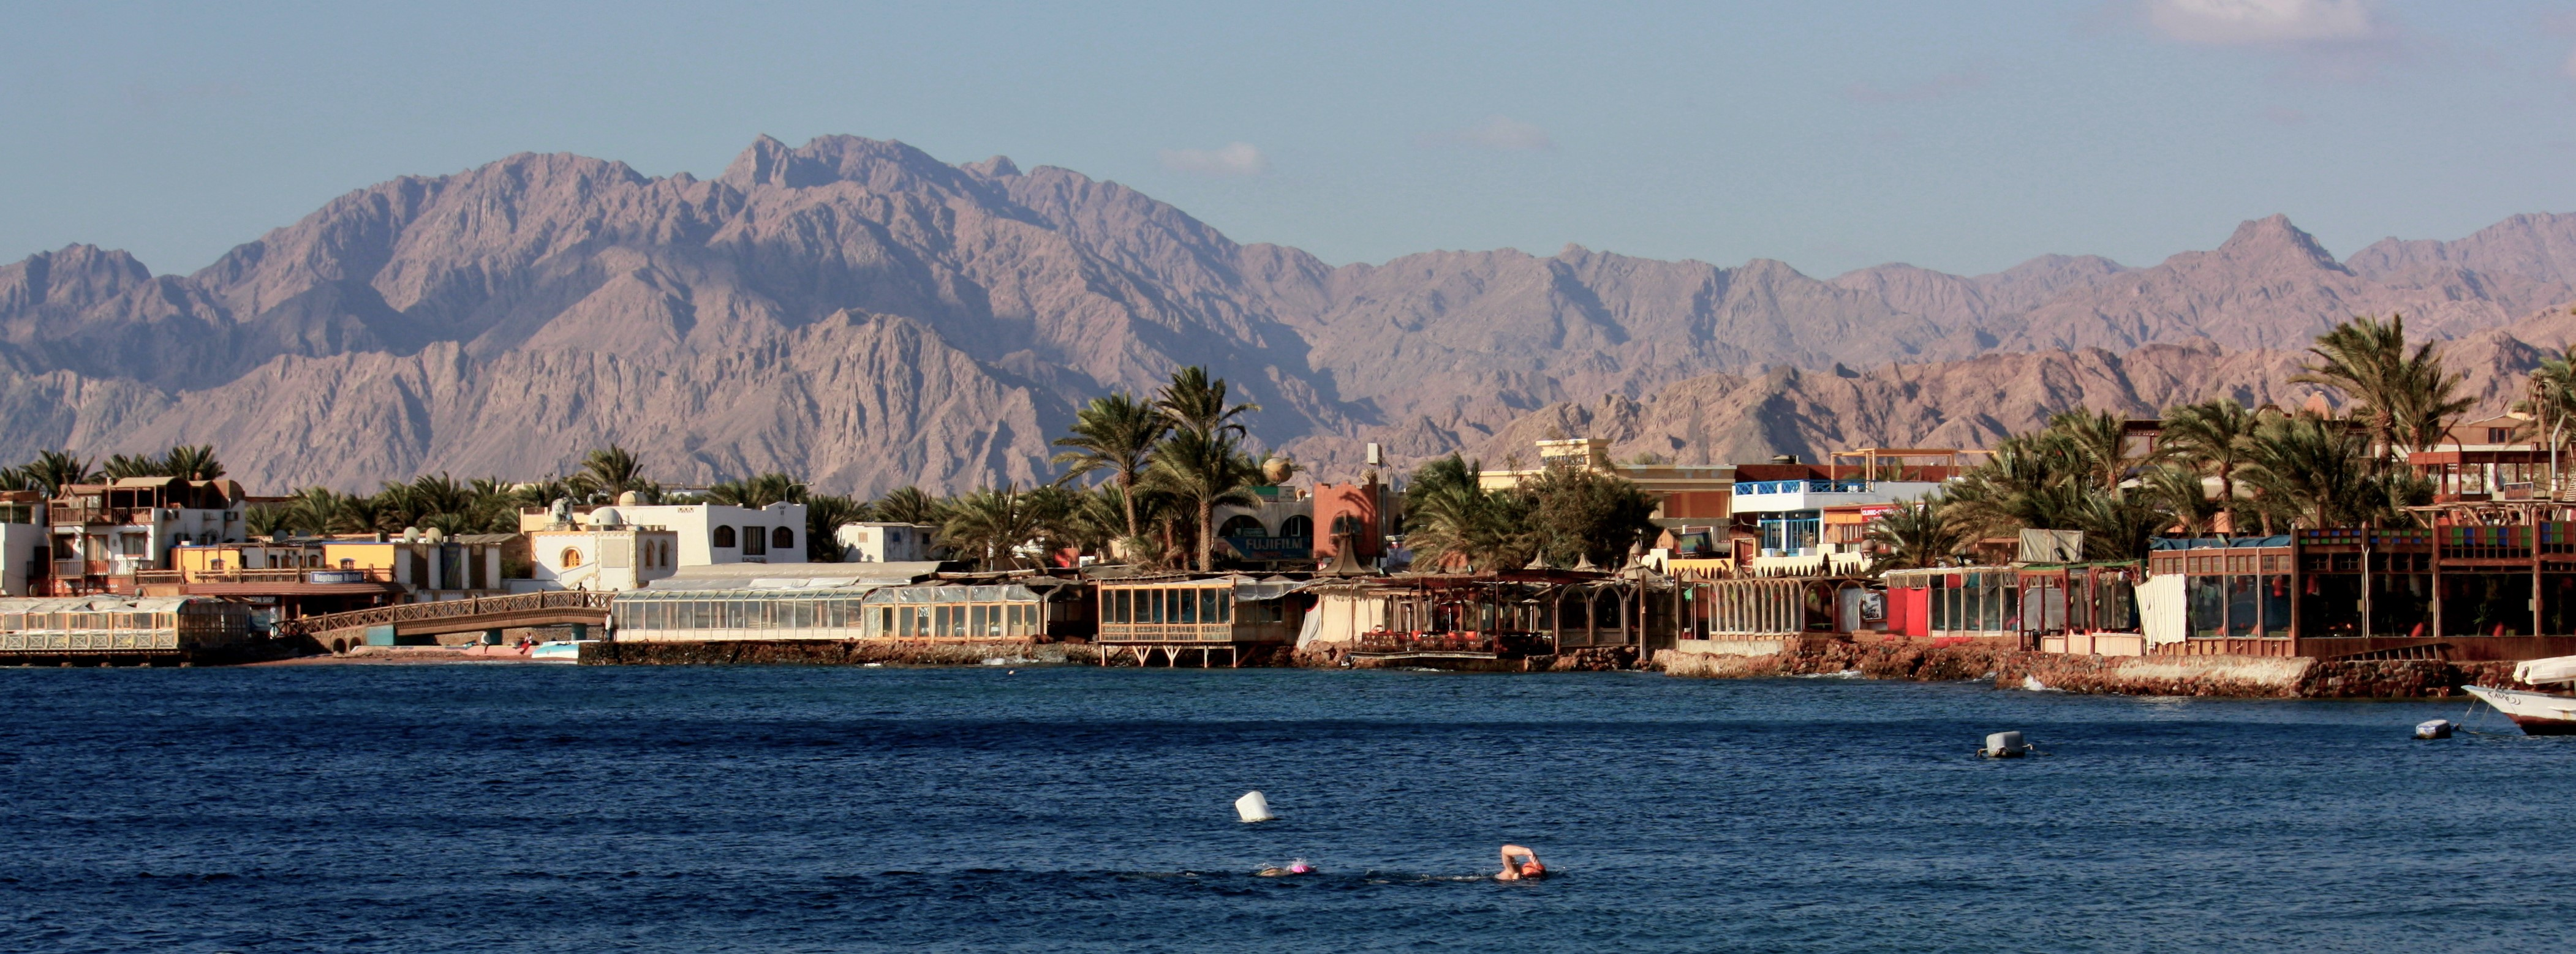 Inns and cafeterias lining the Red Sea in Dahab. Credit: Katia Vastiau